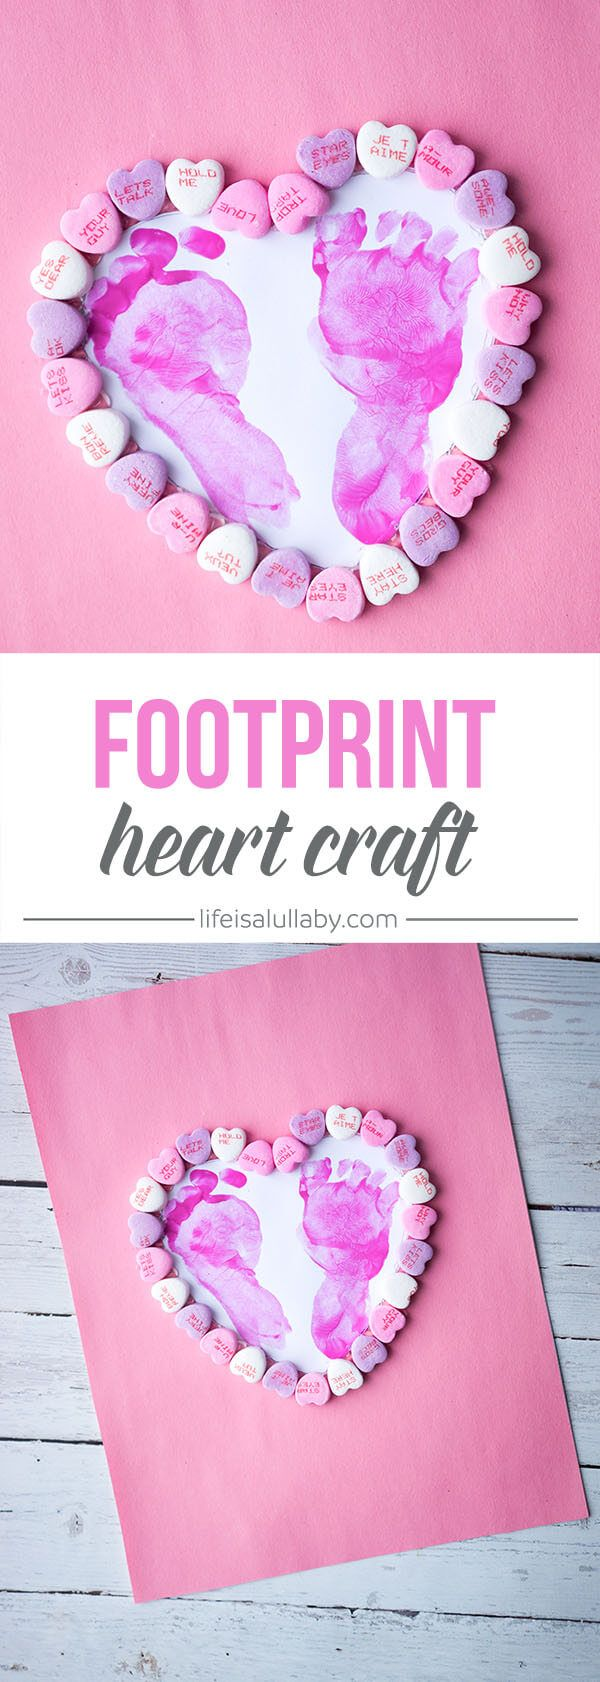 This footprint heart craft is SO CUTE! This is such a nice idea for Valentine's Day or Mother's day as a gift or can be framed.